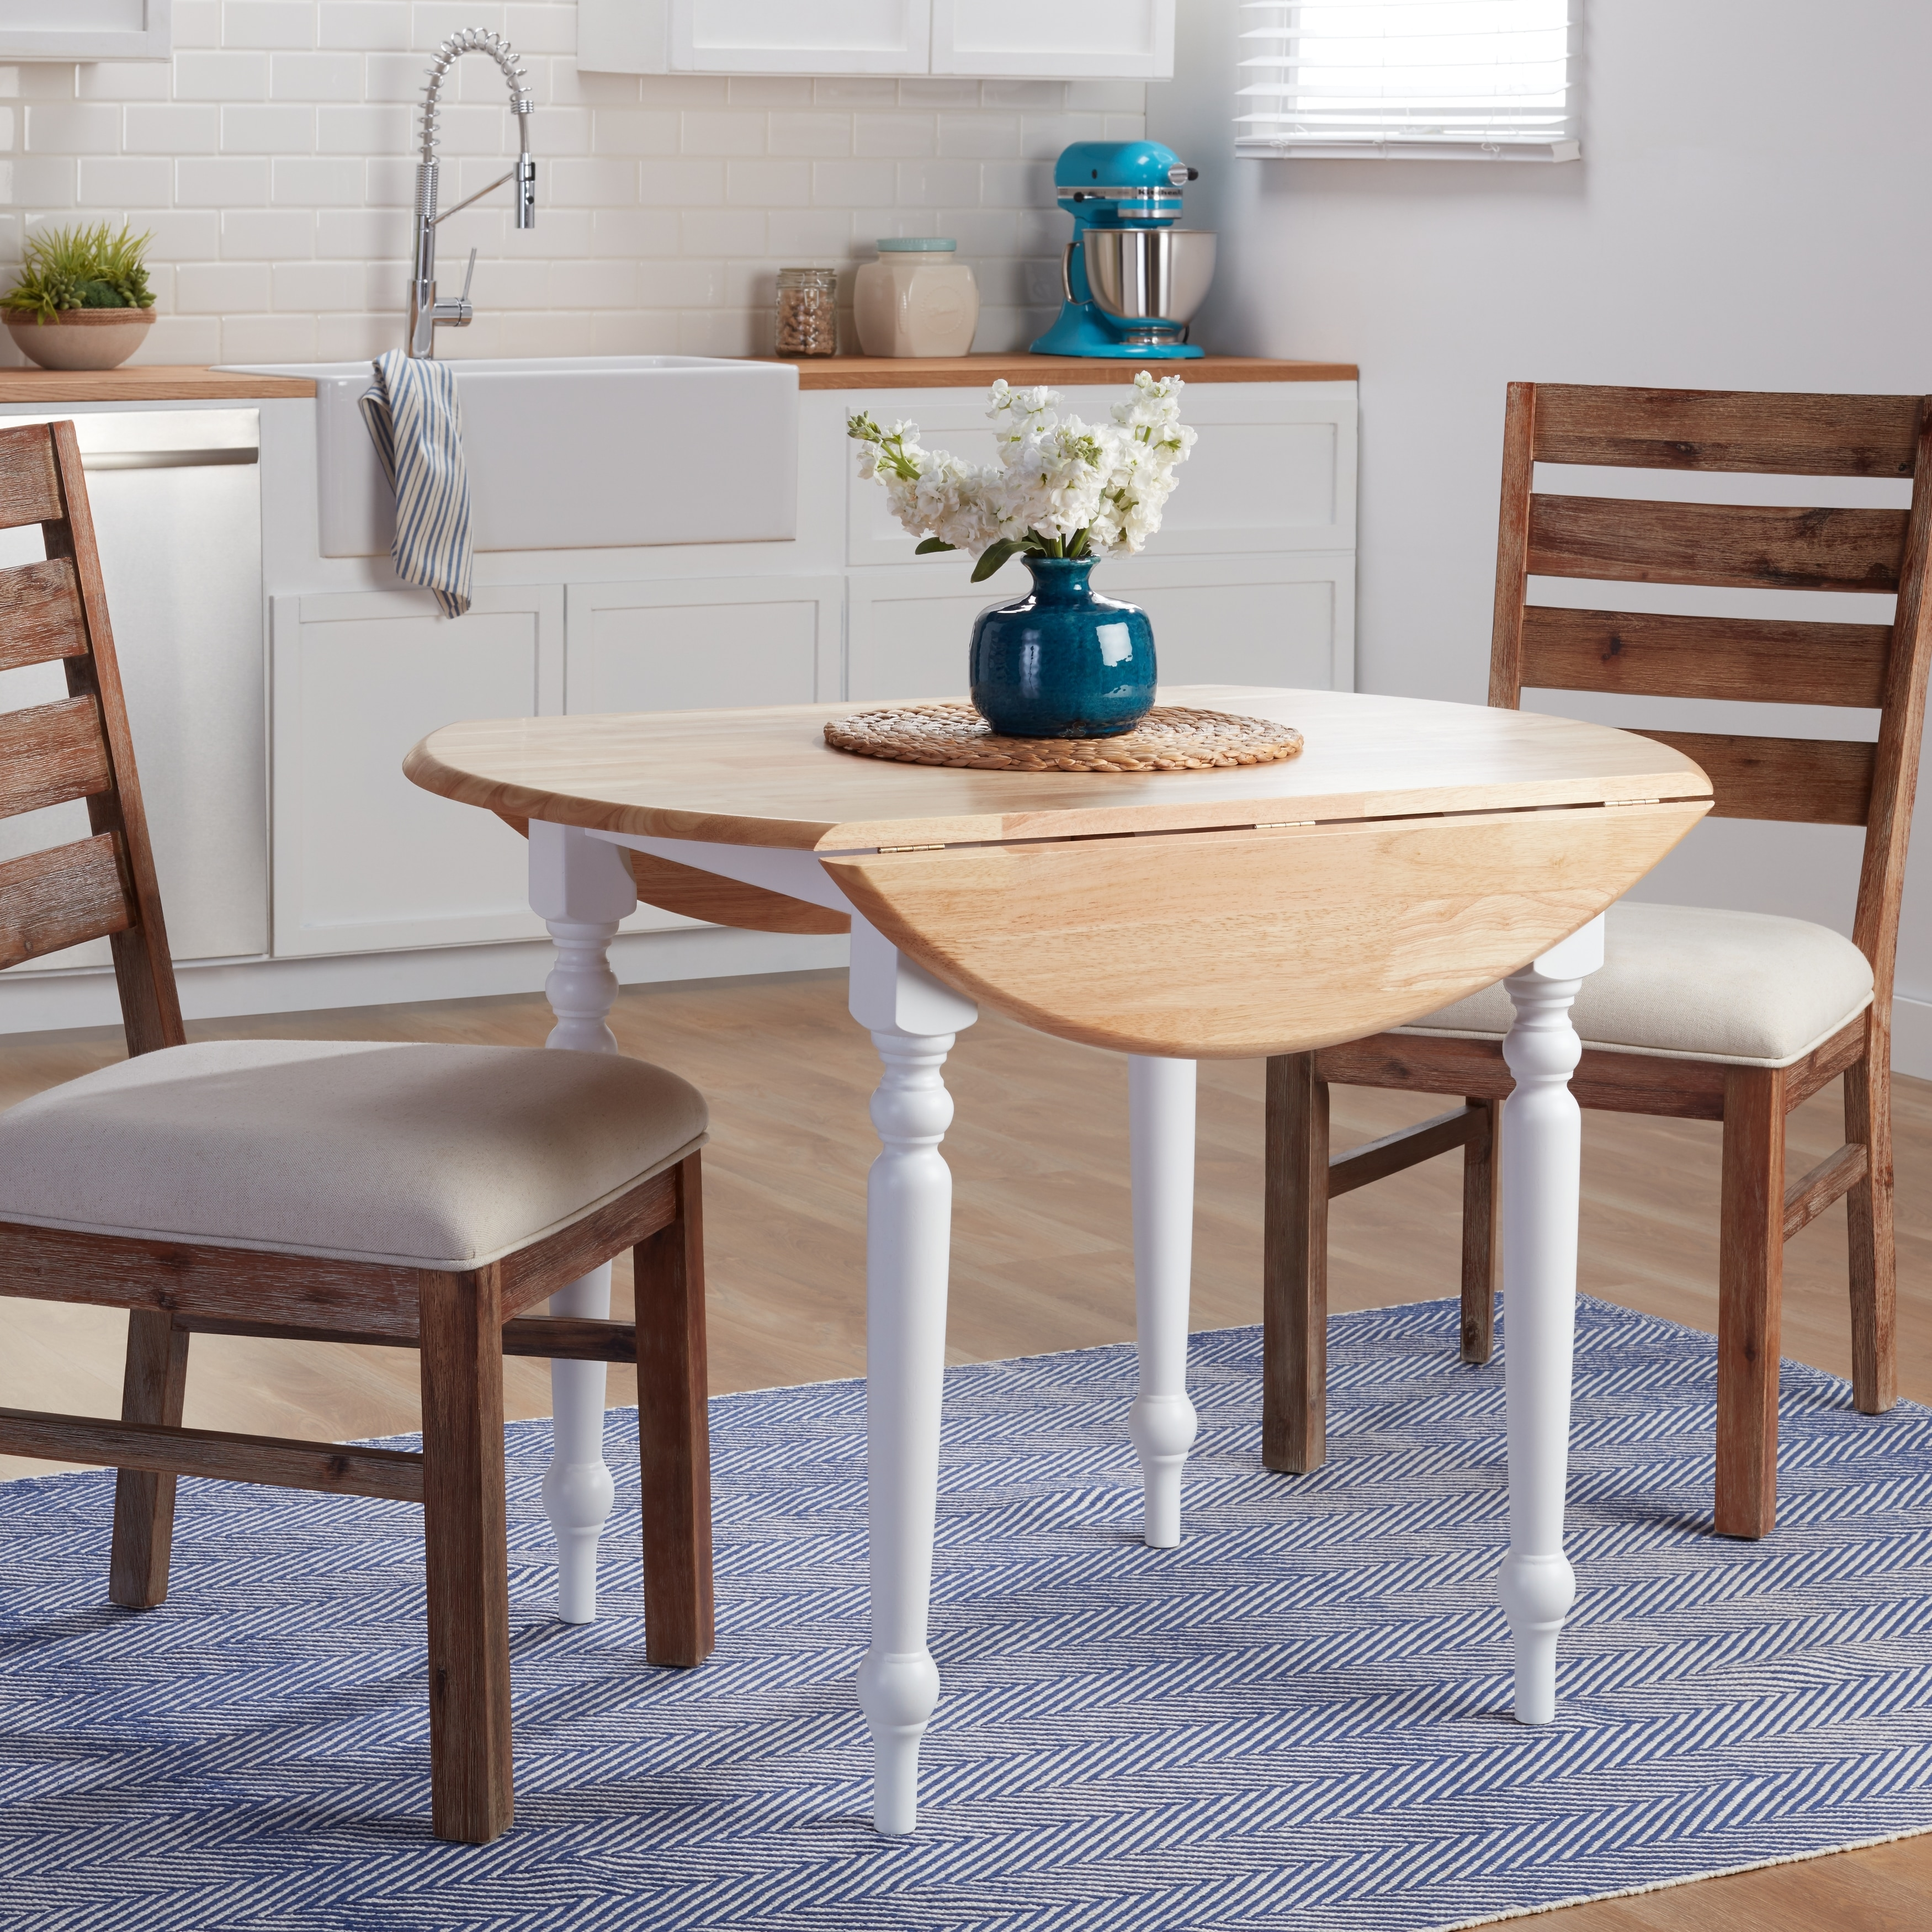 Simple Living Two-tone 40-inch Rubberwood Round Drop-leaf Table - White